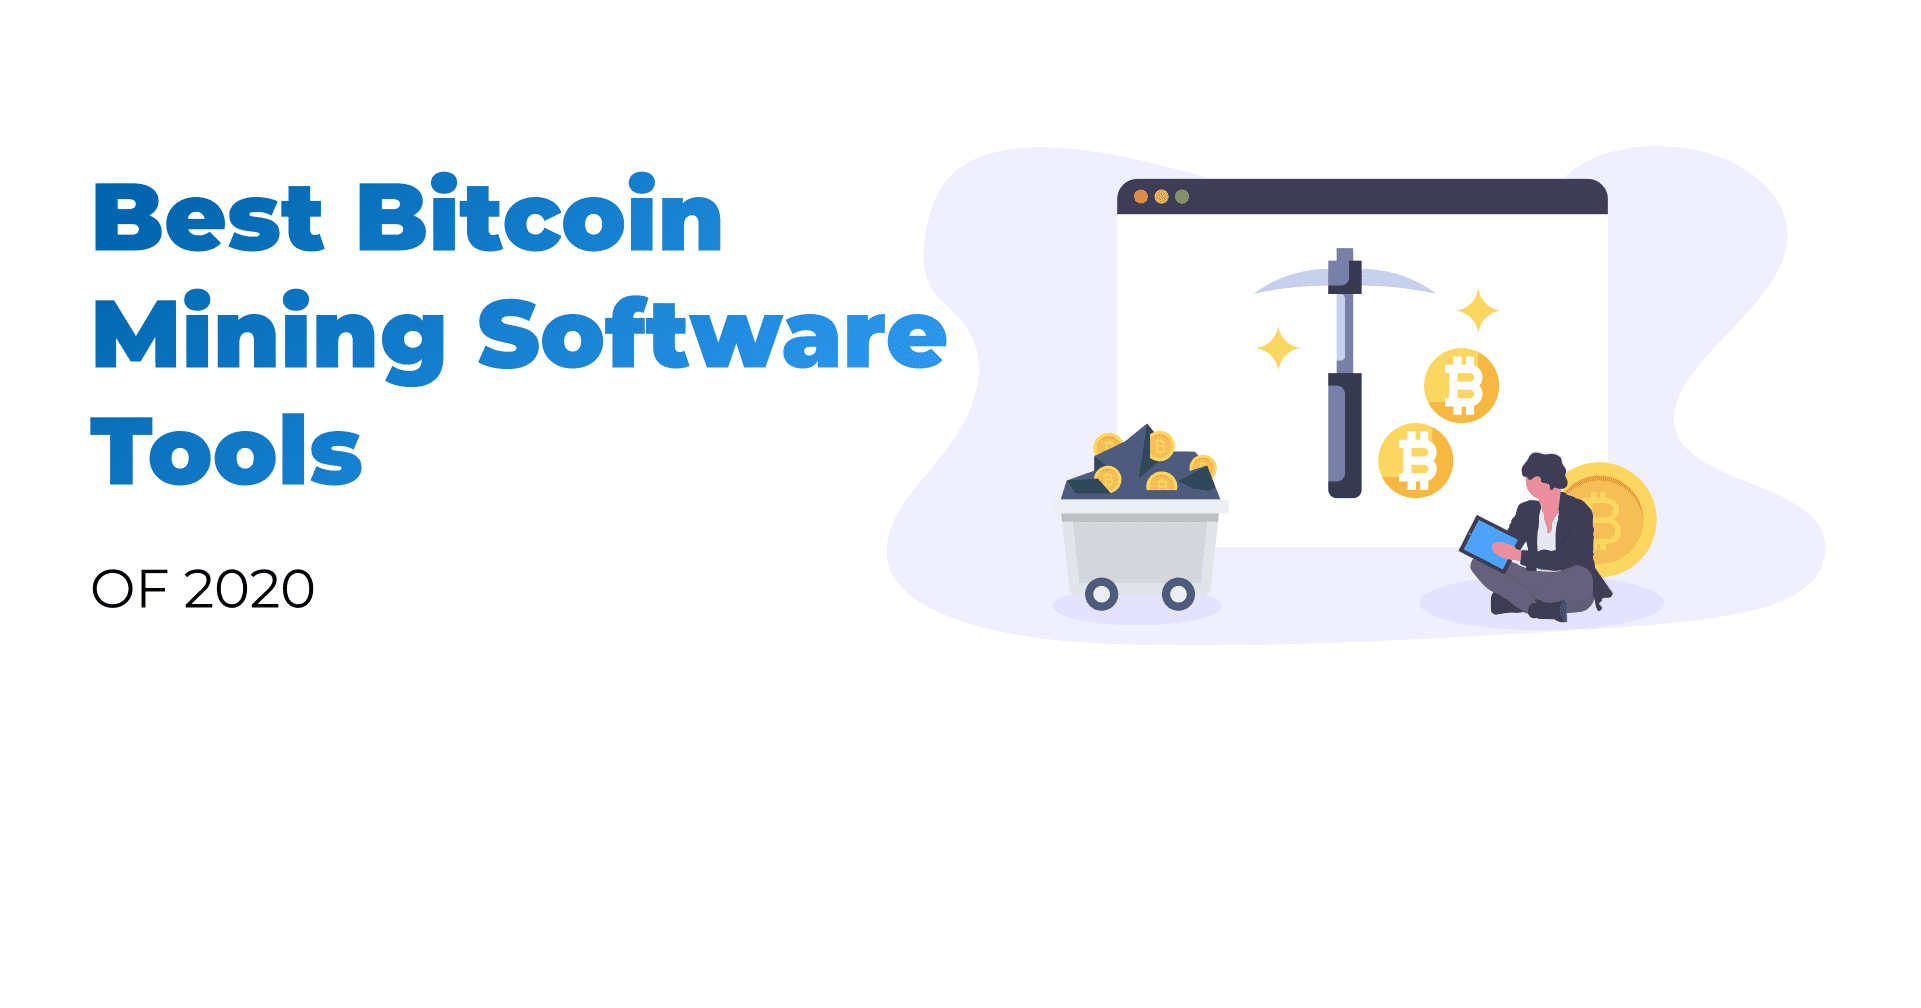 Bitcoin Mining Software Tools, cryptocurrency, Bitcoin, cryptocurrency mining, Bitcoin mining, best crypto mining software, cash-out crypto